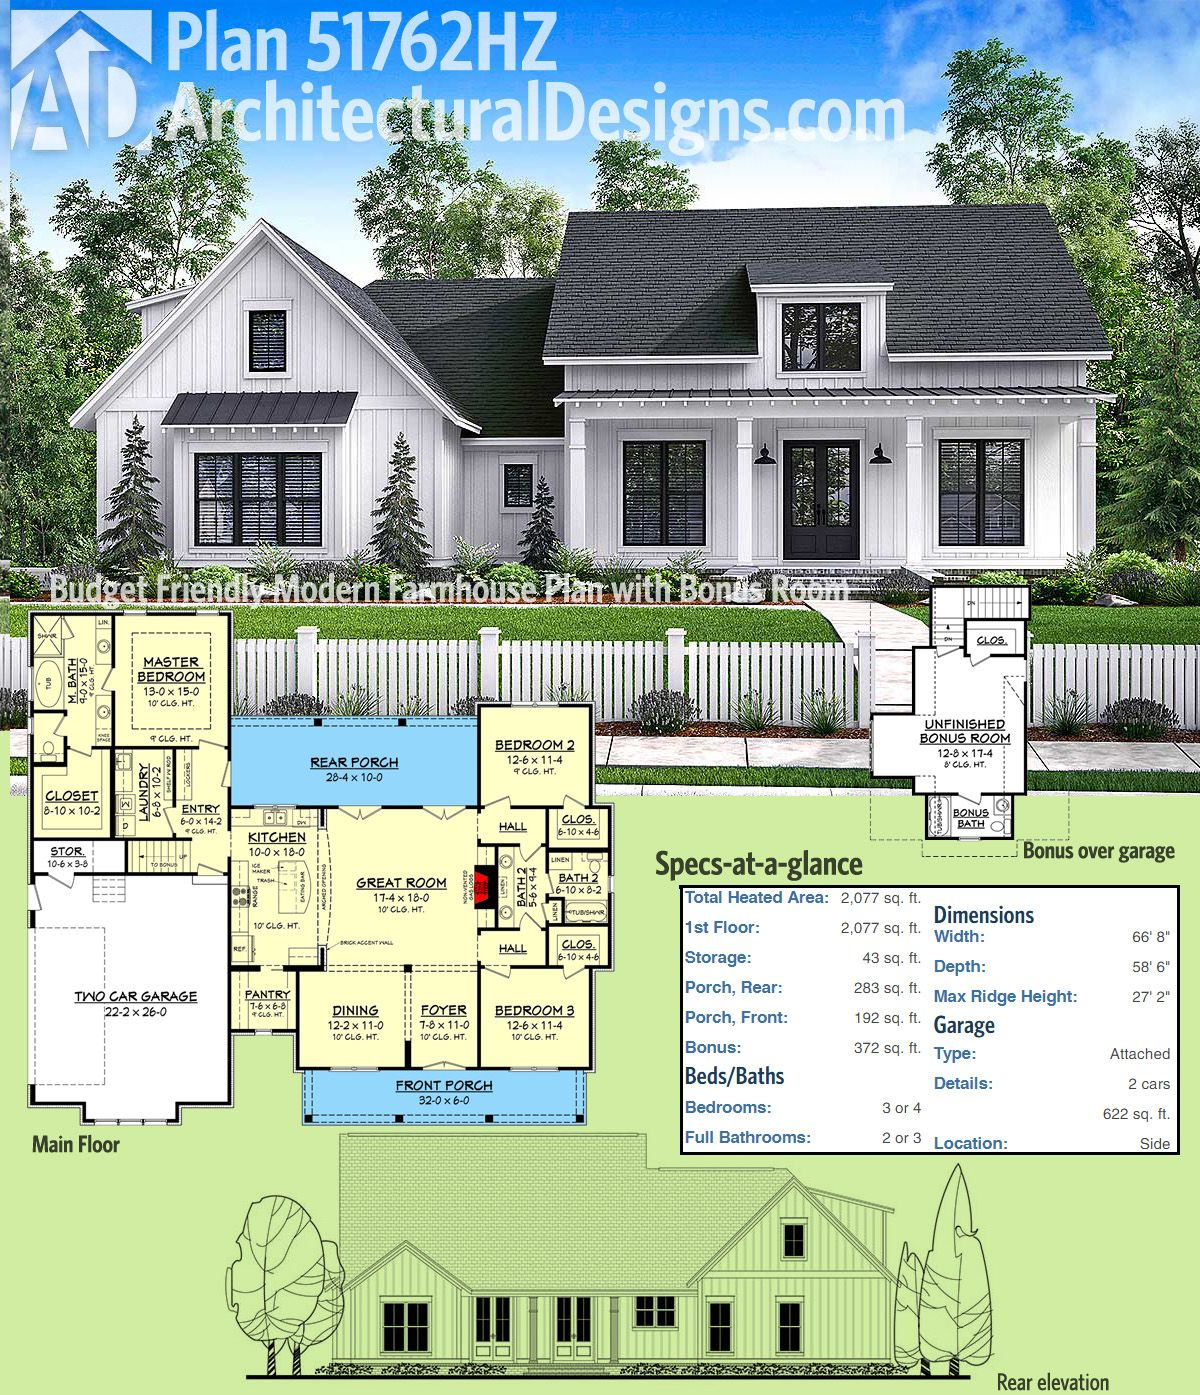 Plan 51762hz budget friendly modern farmhouse plan with House plans for farmhouses